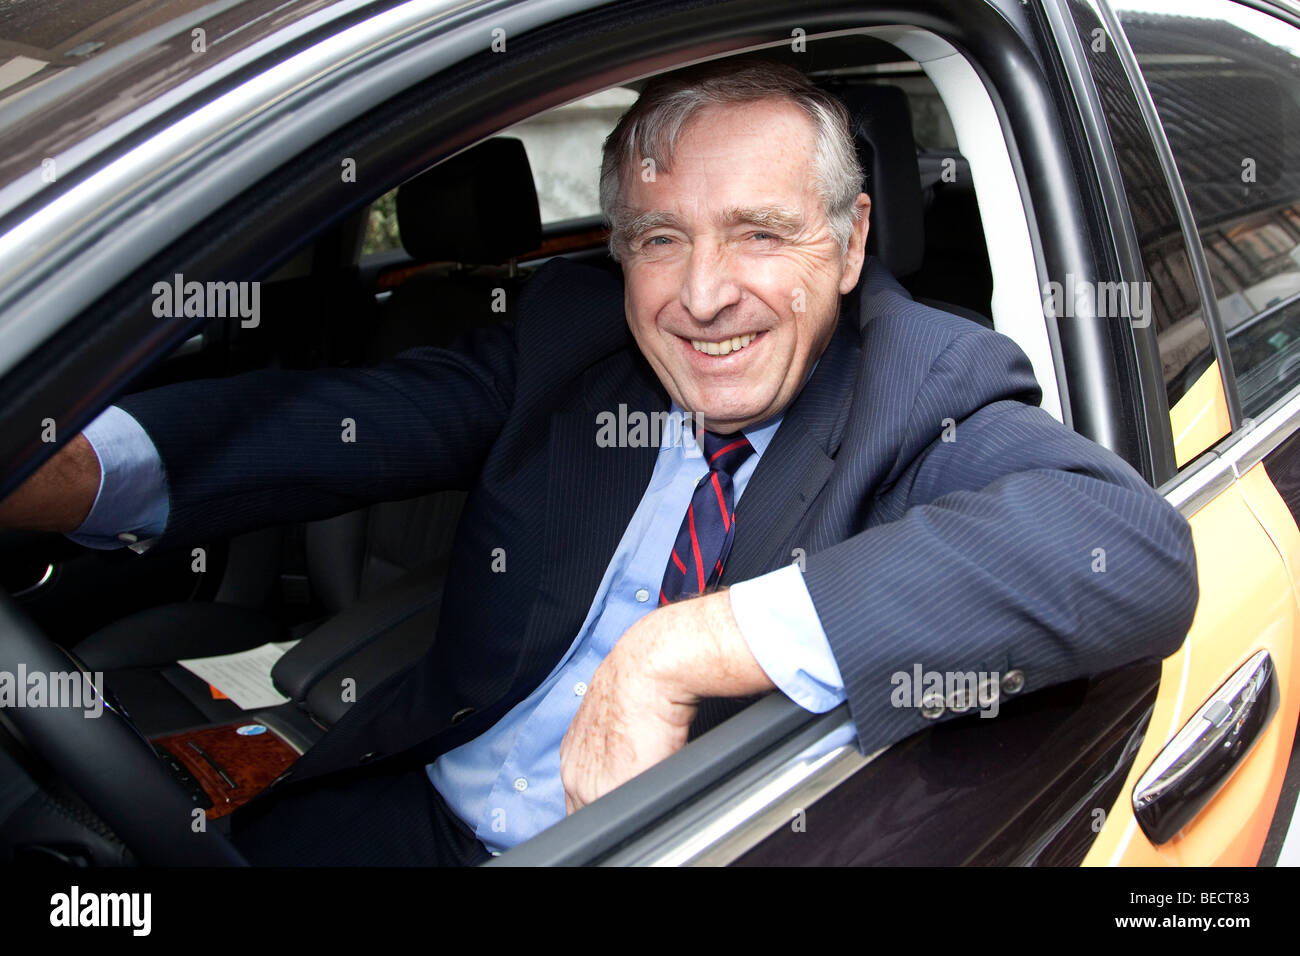 Erich Sixt, chief executive and main shareholder of the Sixt AG, sitting in a car with the Sixt logo - Stock Image